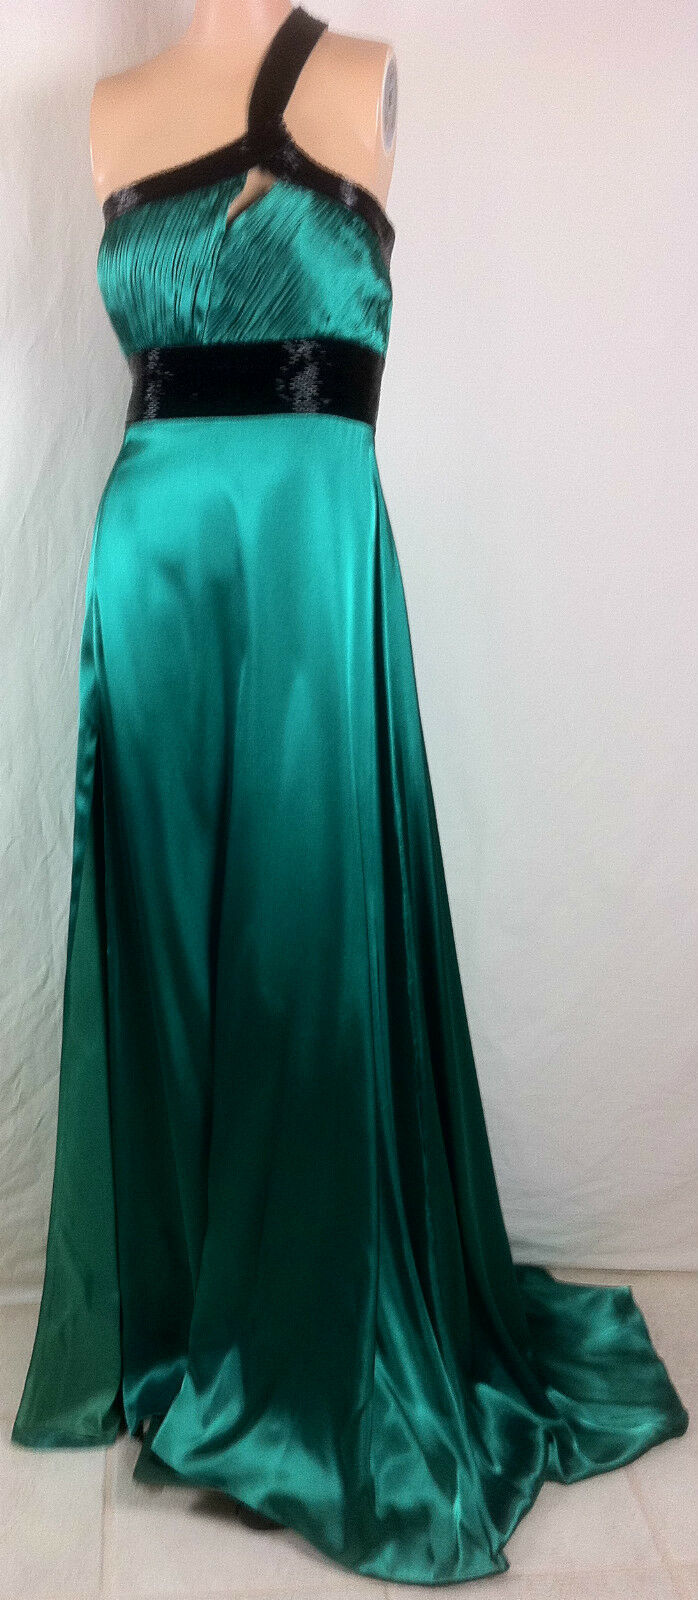 ny kvinnor Shimmer av Bari Jay Emerald grön Beads One Shoulder Gown Dress SZ 12